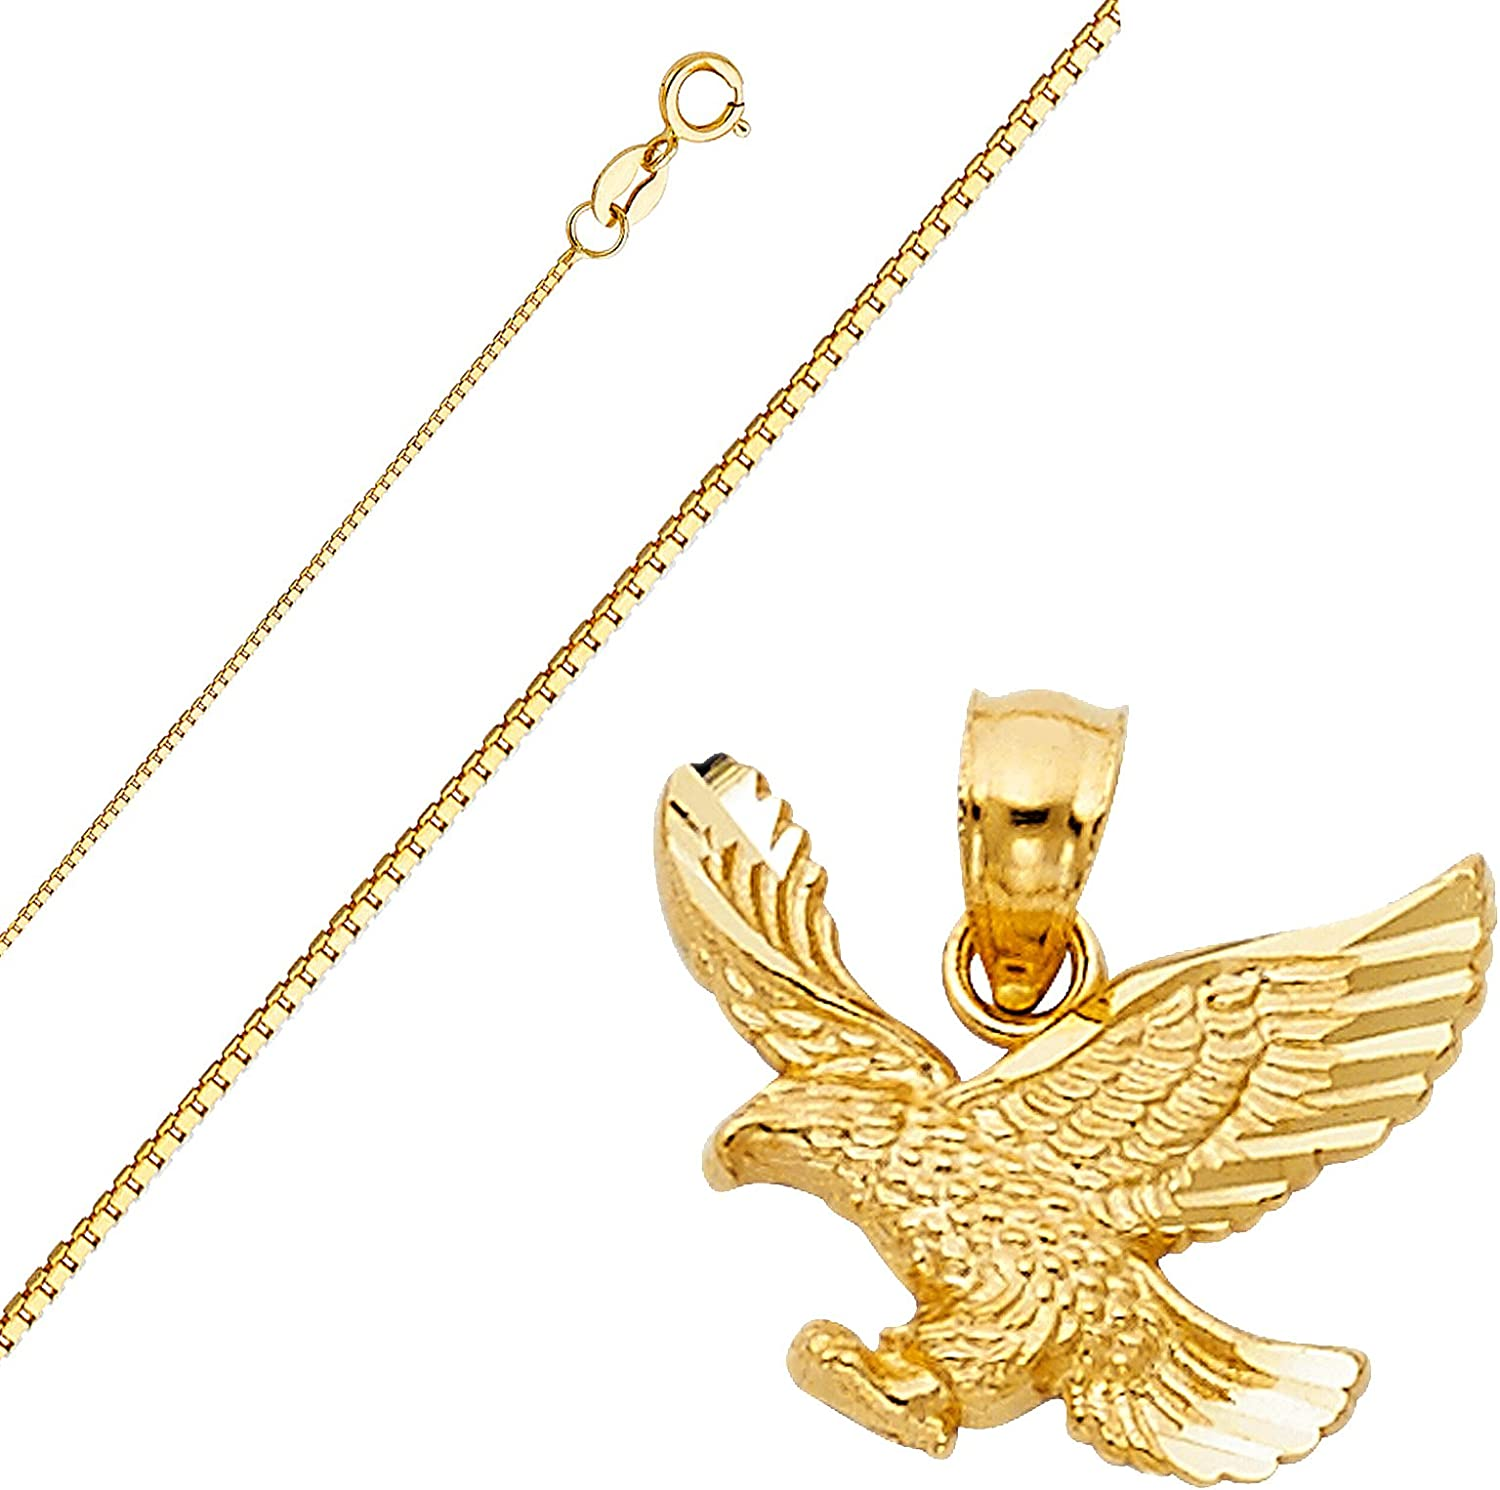 Top Gold /& Diamond Jewelry Solid 14K Gold Box Chain Eagle Pendant Necklace Set